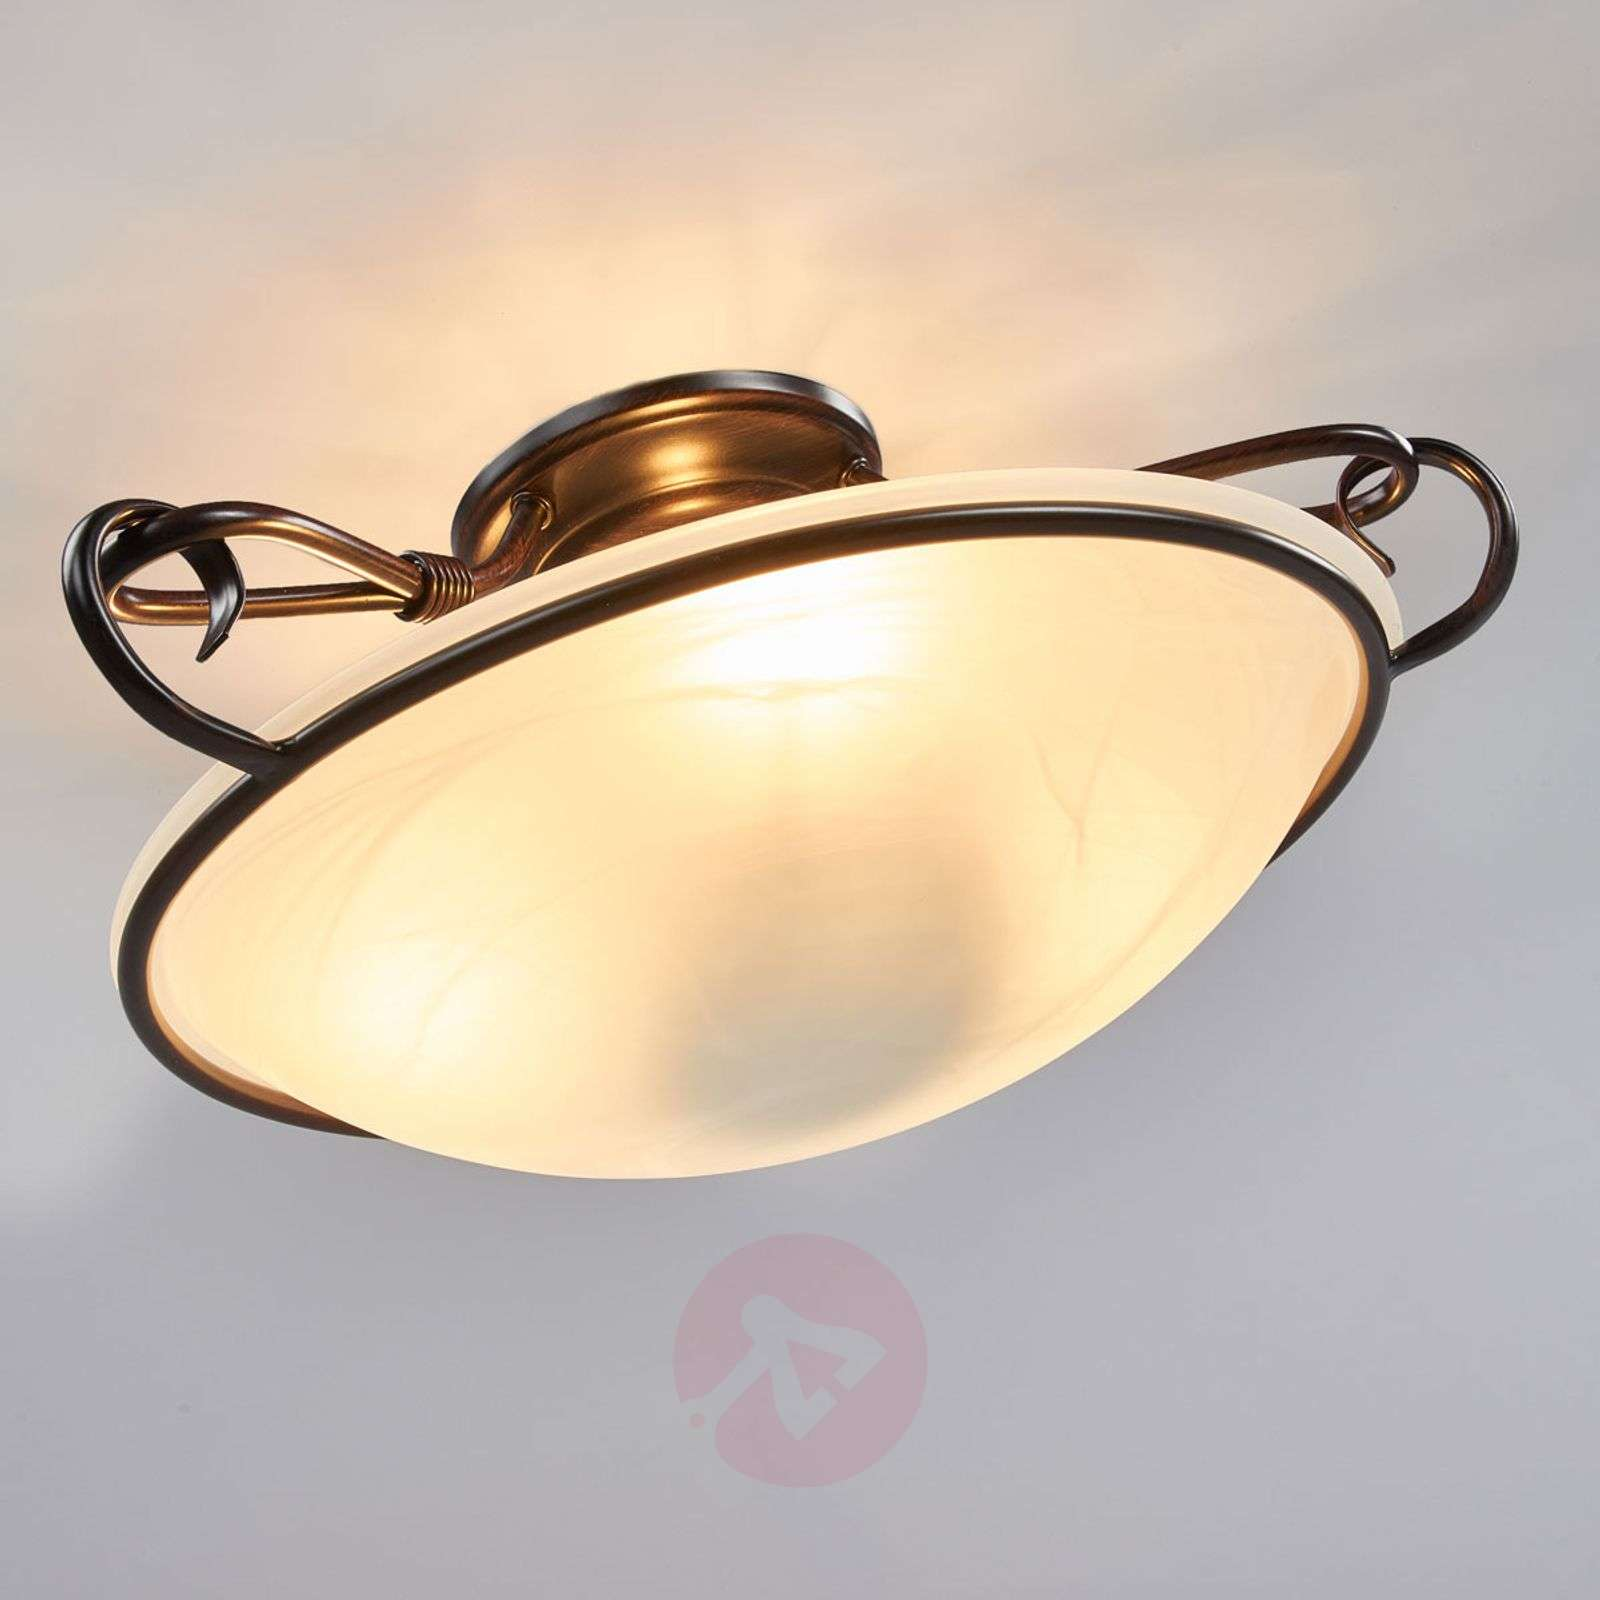 Decorative Como ceiling light, antique rust colour ...